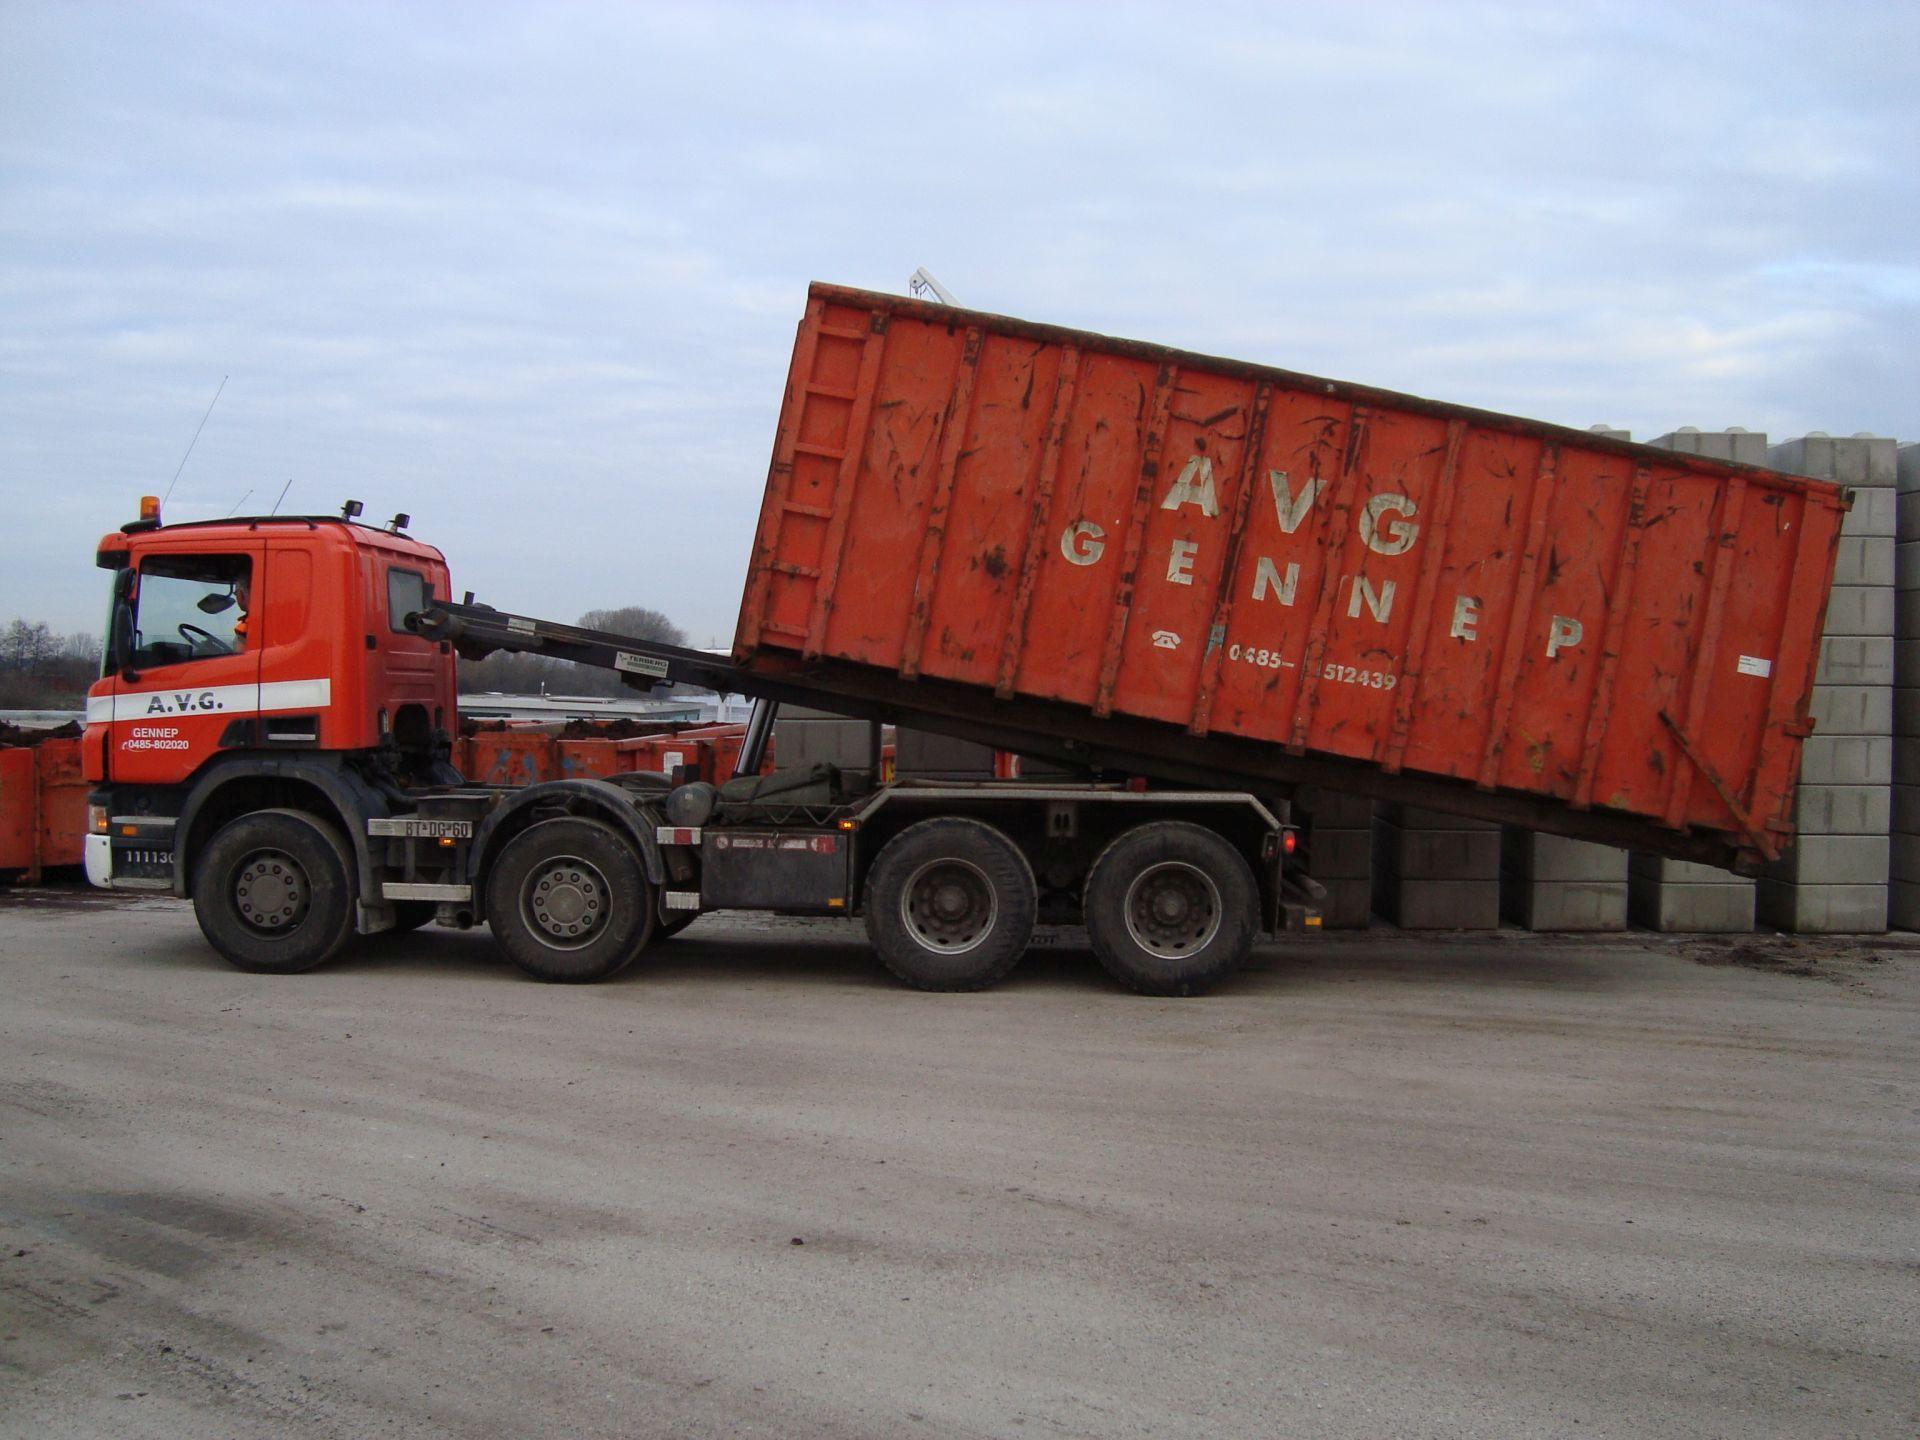 grote-container-8-avg-bouwstoffen